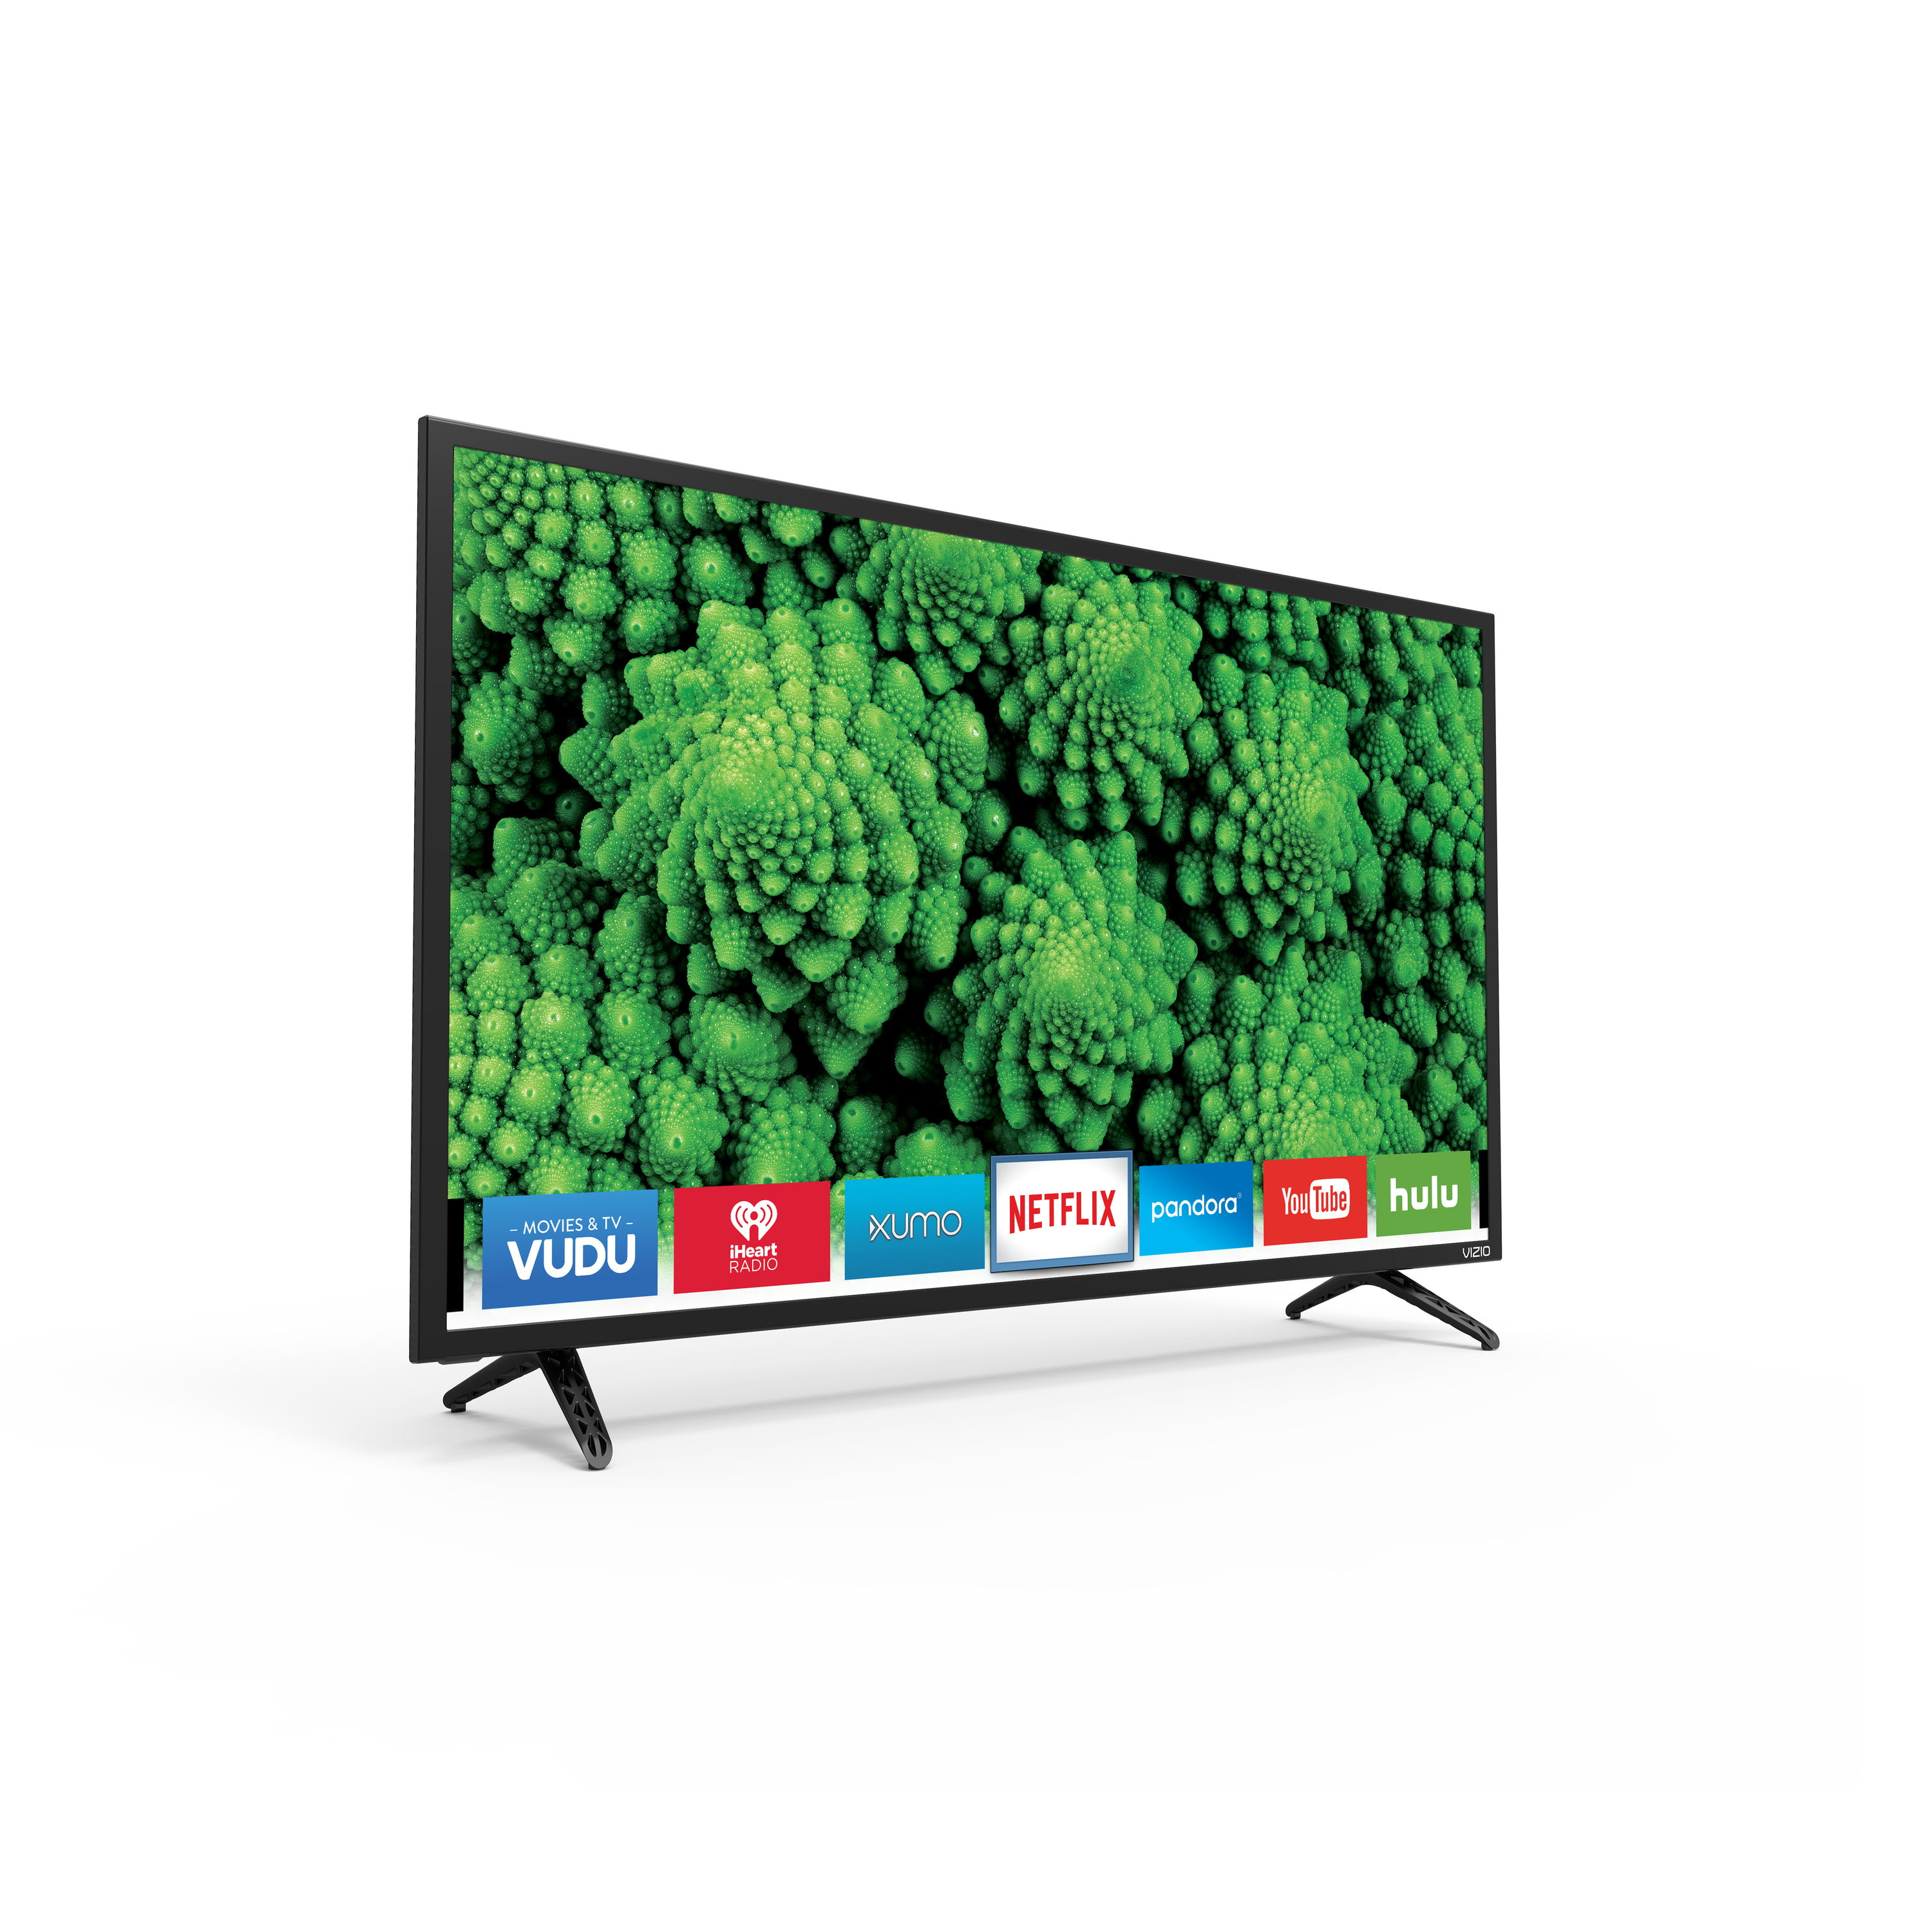 Vizio 32 class fhd 1080p smart led tv d32f e1 walmart fandeluxe Image collections